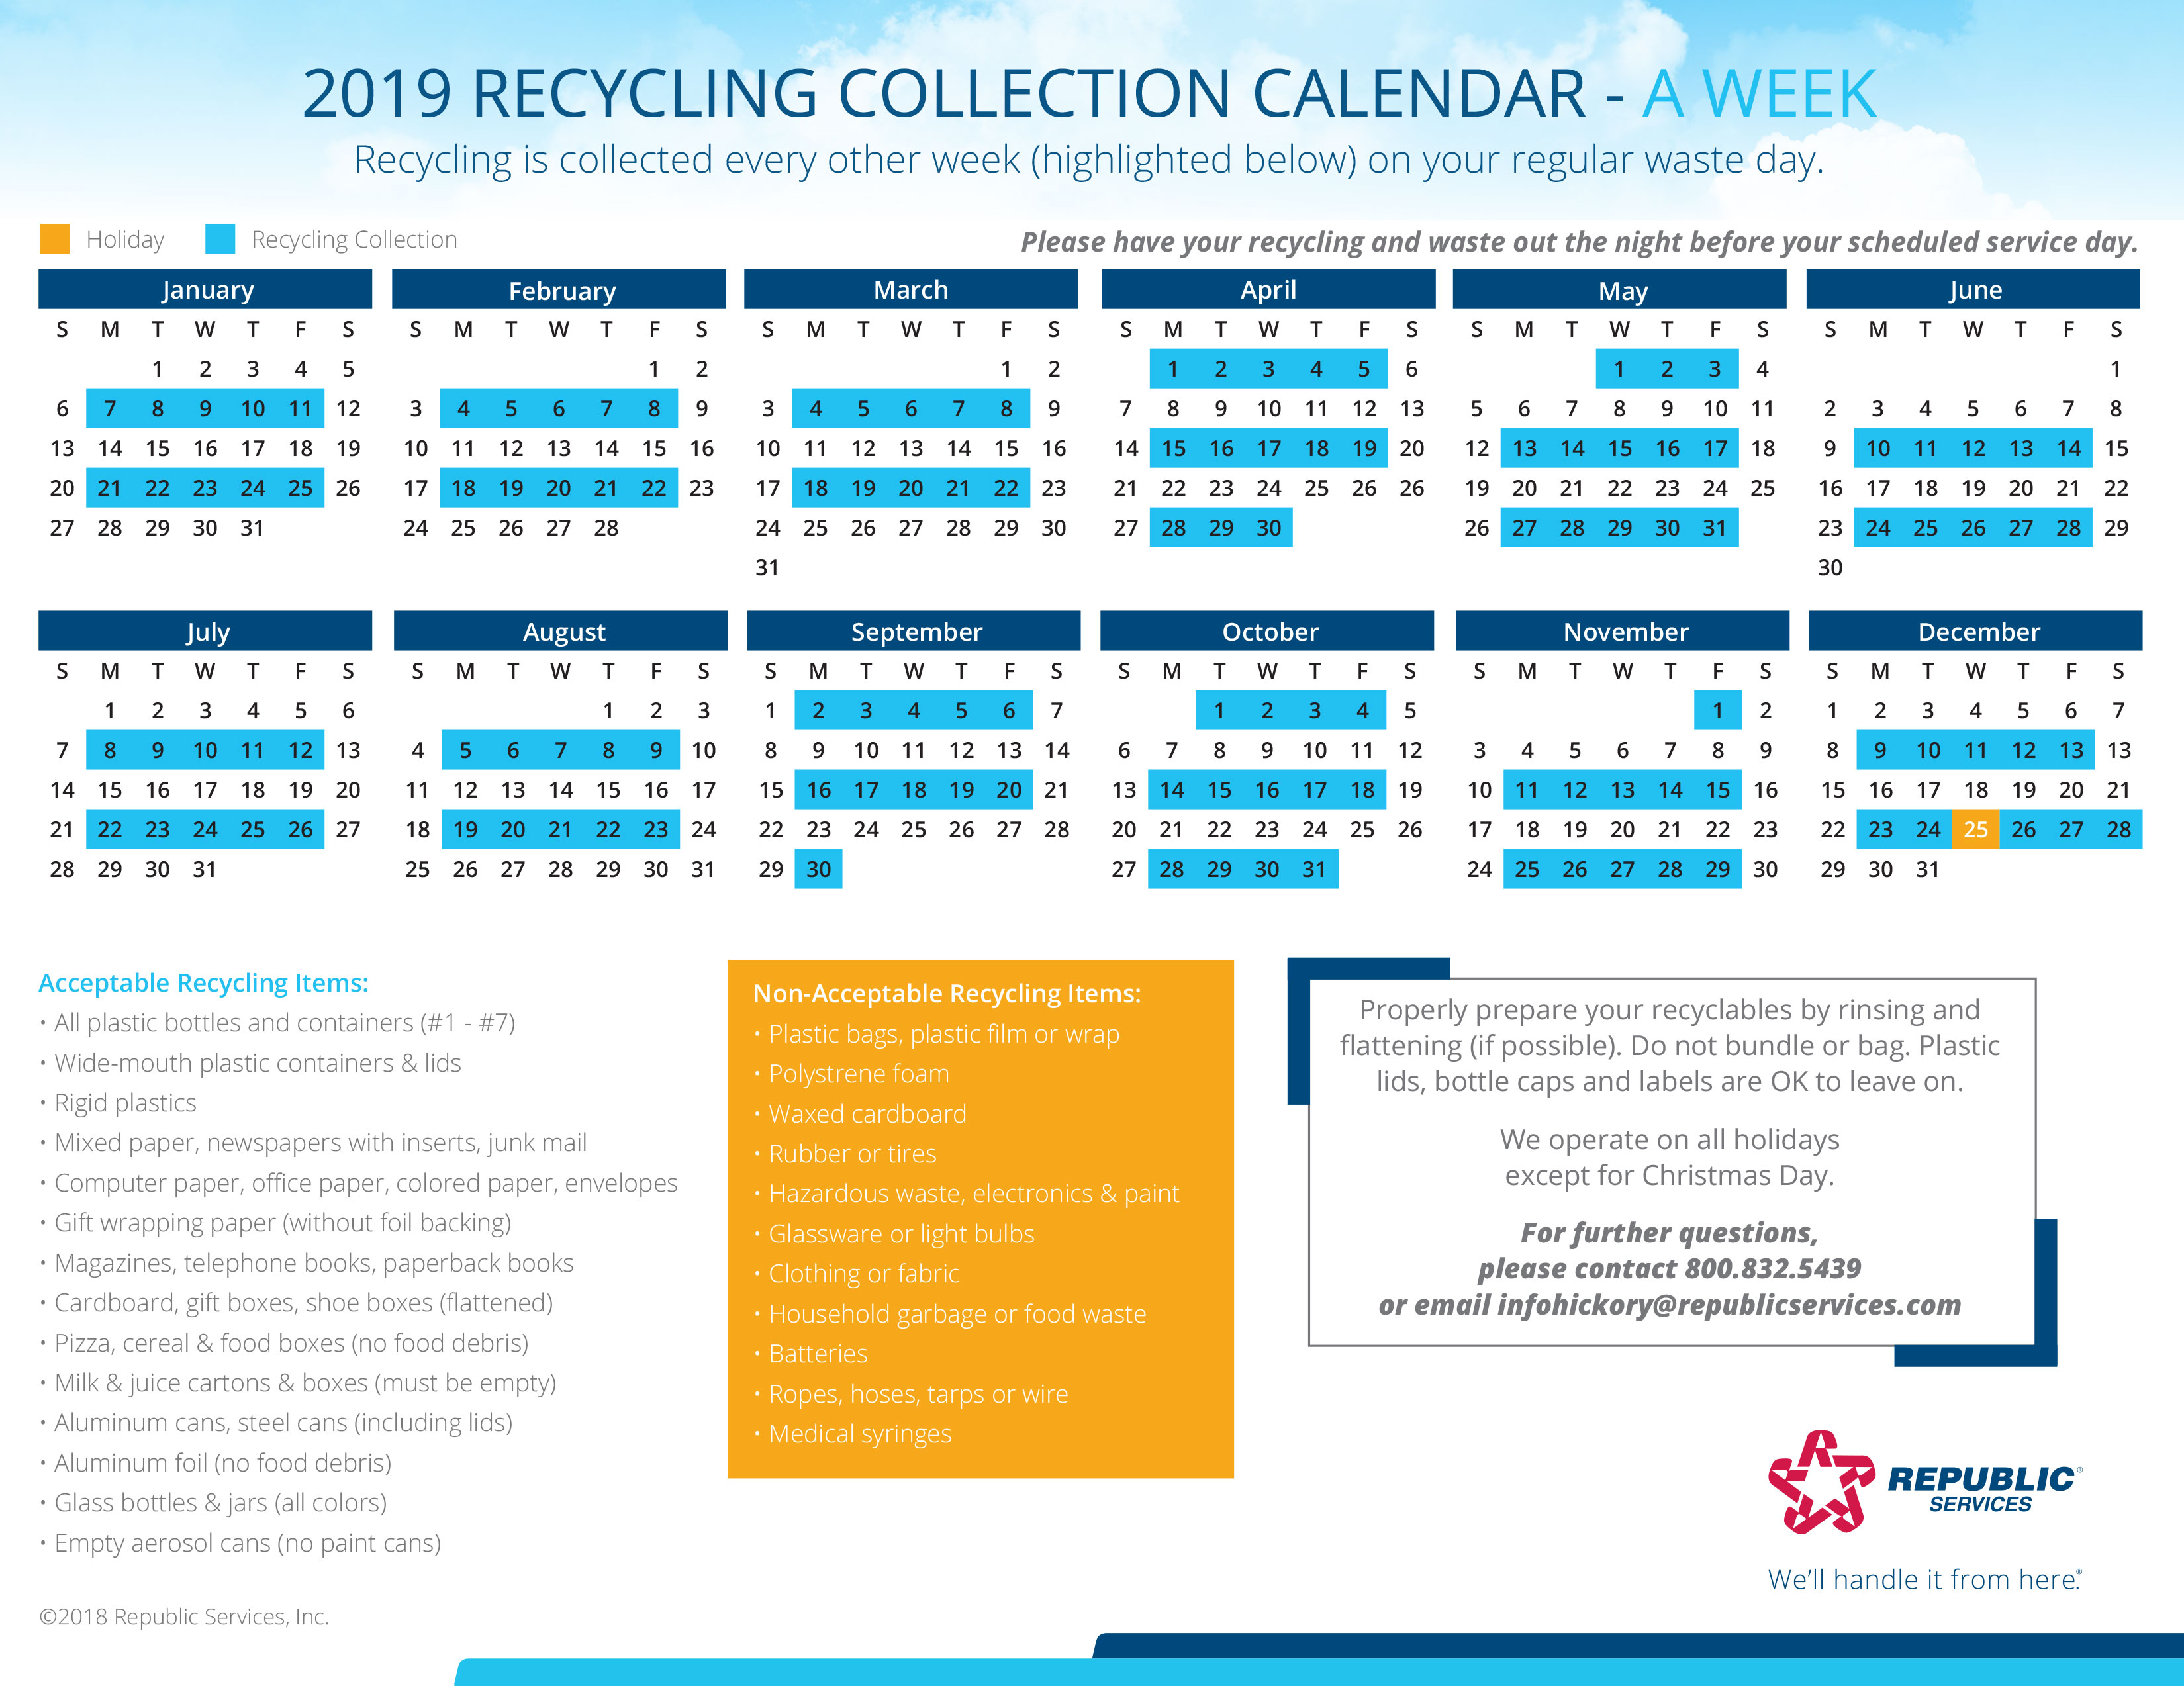 Recycle 2019 A Week Calendar